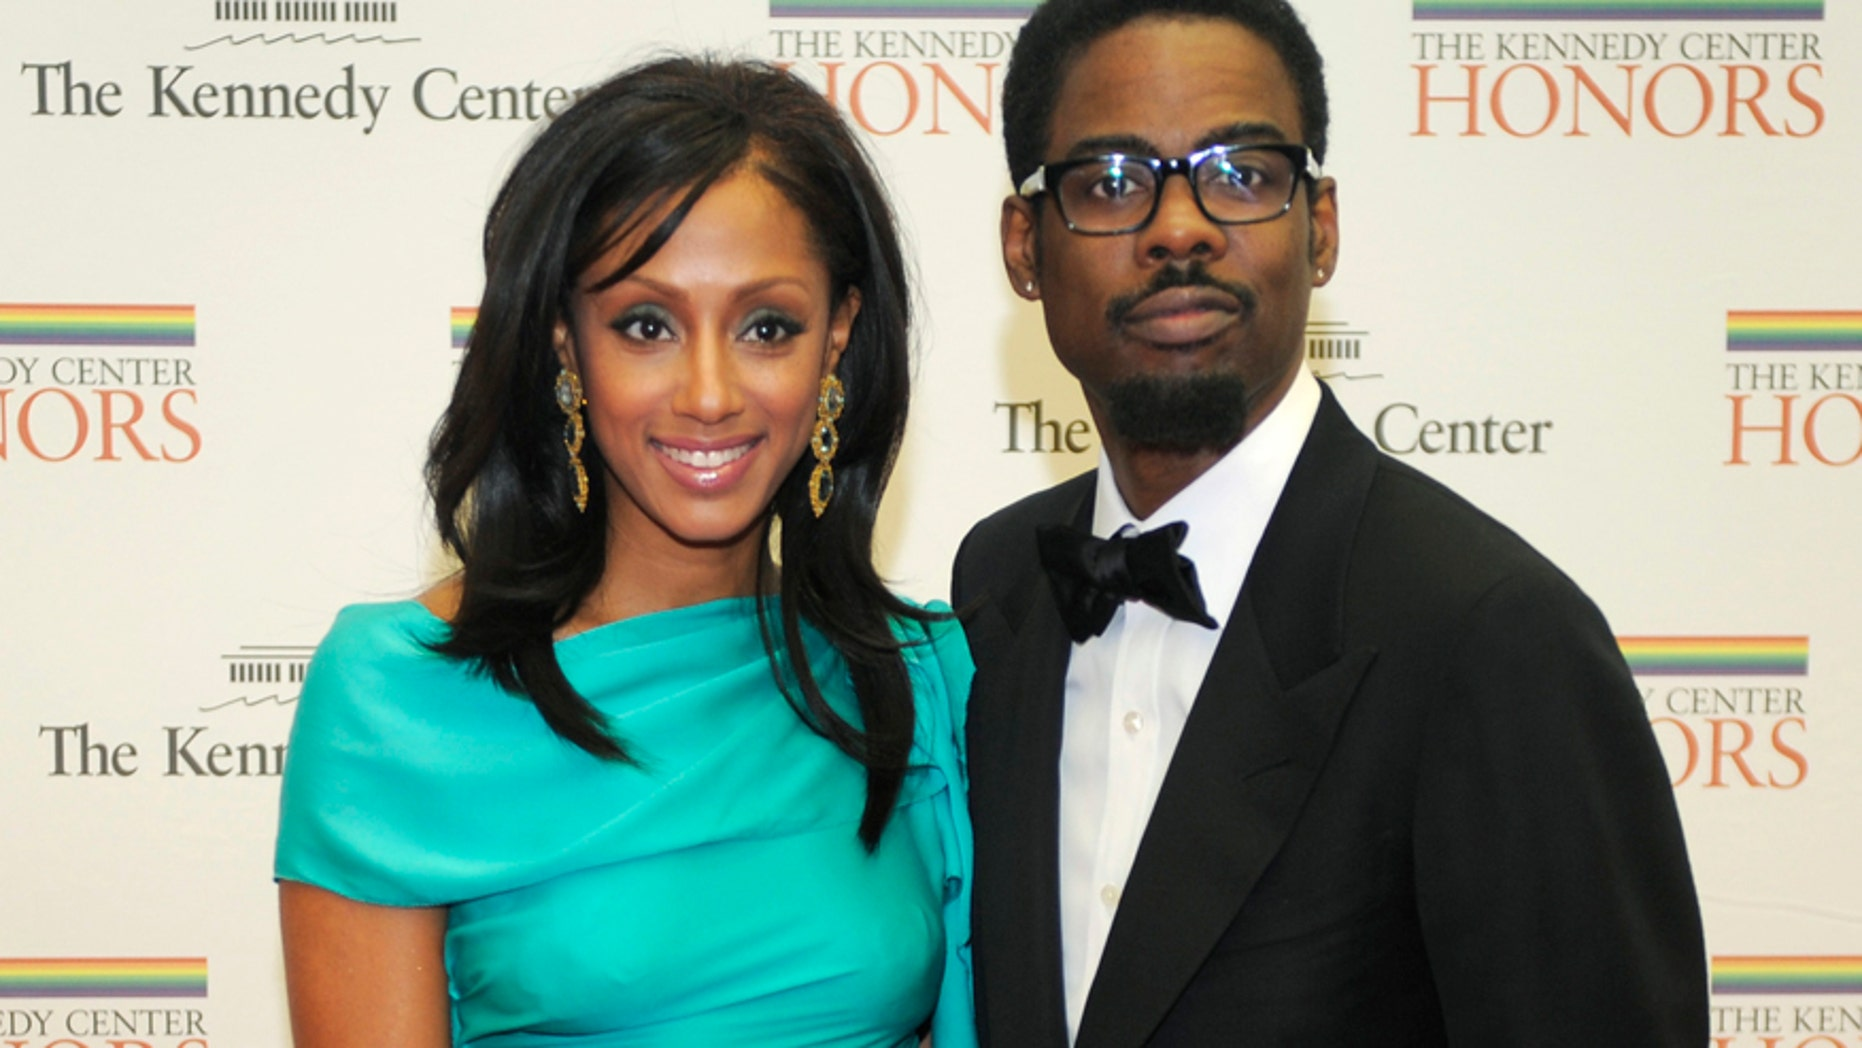 Comedian Chris Rock and his wife Malaak pose for photographers on the red carpet as they arrive at the State Department for a gala dinner for the 2010 Kennedy Center Honorees in Washington December 4, 2010.